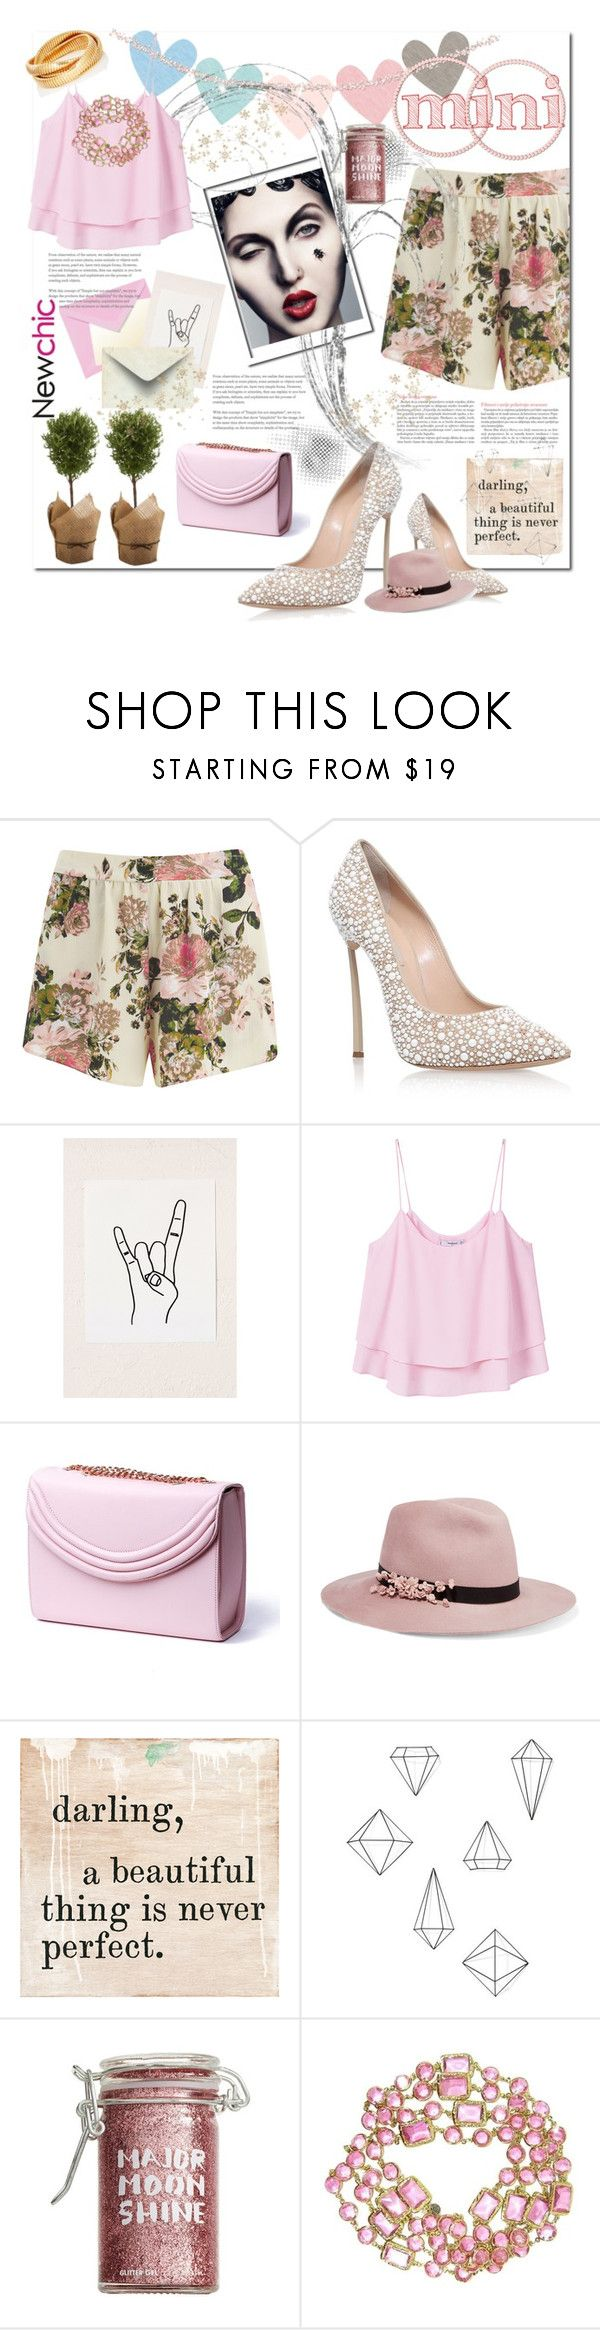 """""""pink it is"""" by luanna98 ❤ liked on Polyvore featuring Vila Milano, Casadei, Tema, Urban Outfitters, MANGO, Lauren Cecchi, Eugenia Kim, Umbra, Major Moonshine and Chanel"""